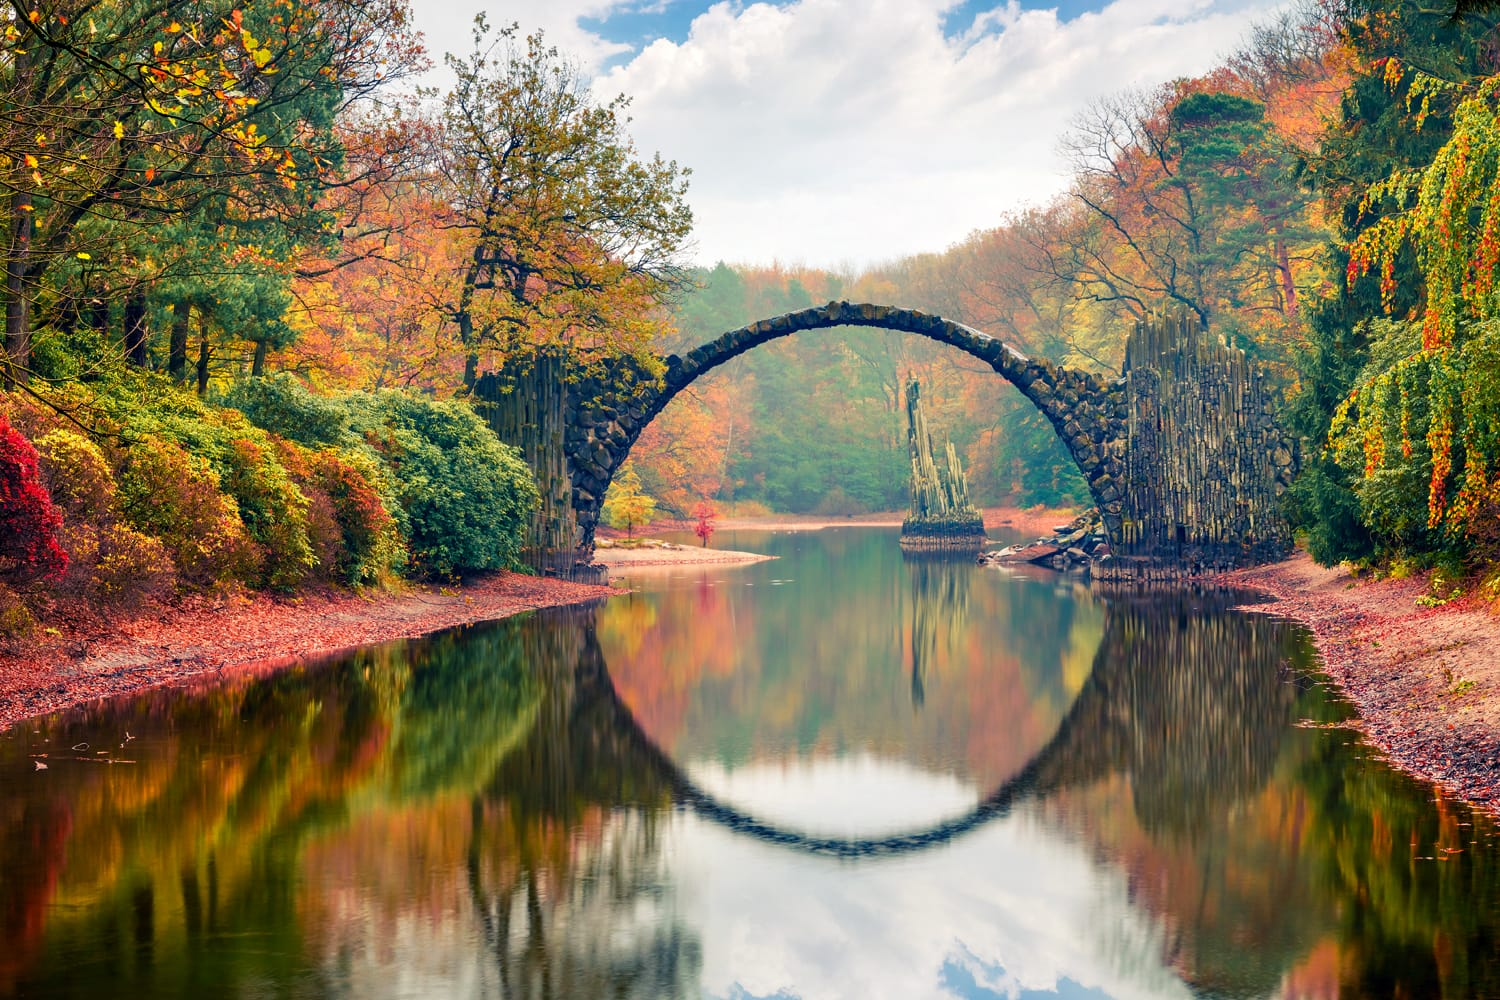 Rakotz Bridge (Rakotzbrucke, Devil's Bridge). Unbelievable morning scene of Azalea and Rhododendron Park Kromlau, Germany, Europe